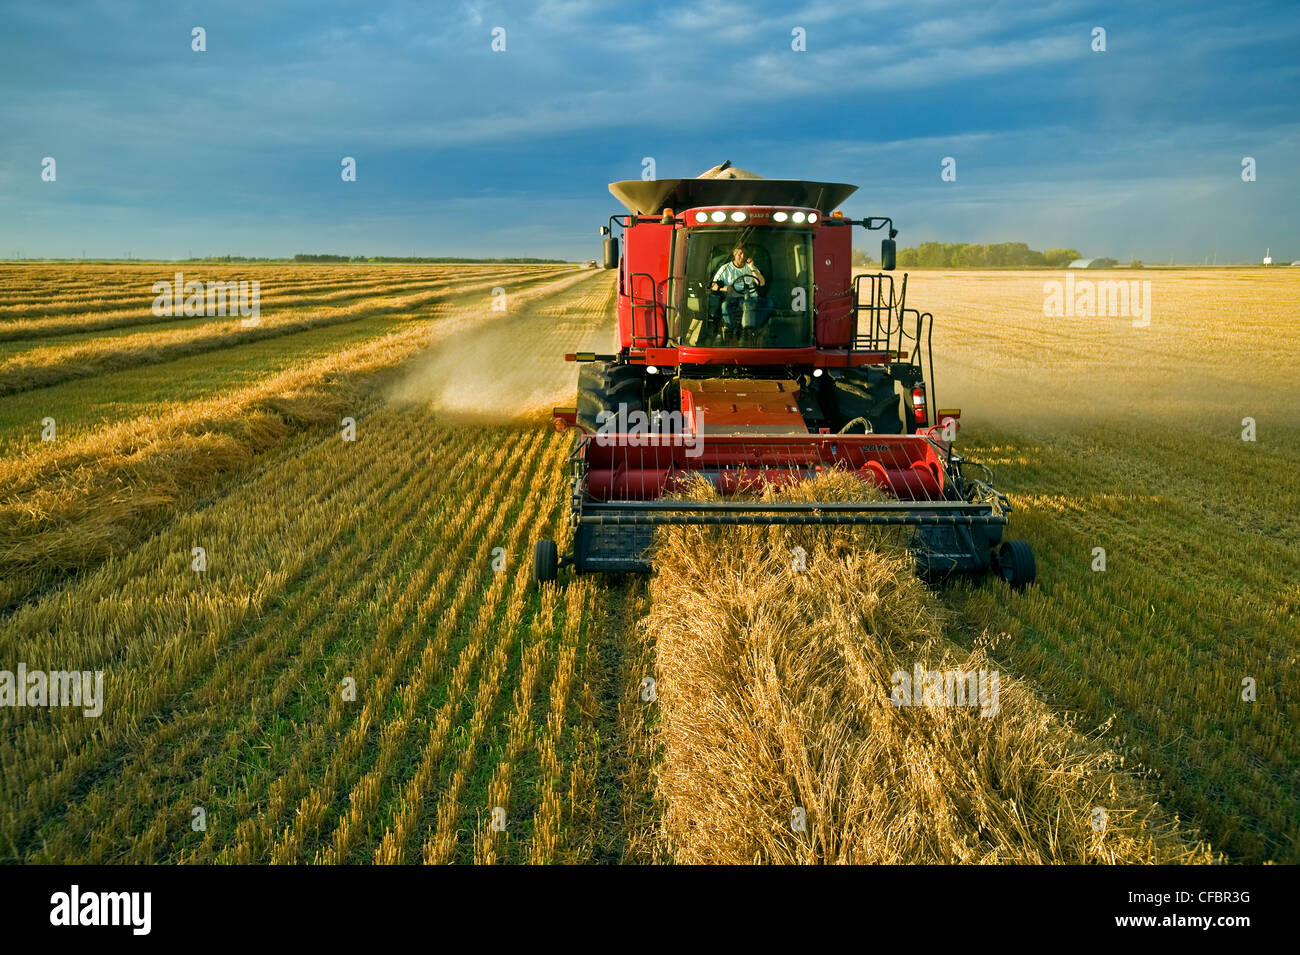 A farmer talks on his cell phone while harvesting his swathed oats (Avena sativa) near Dugald, Manitoba, Canada - Stock Image